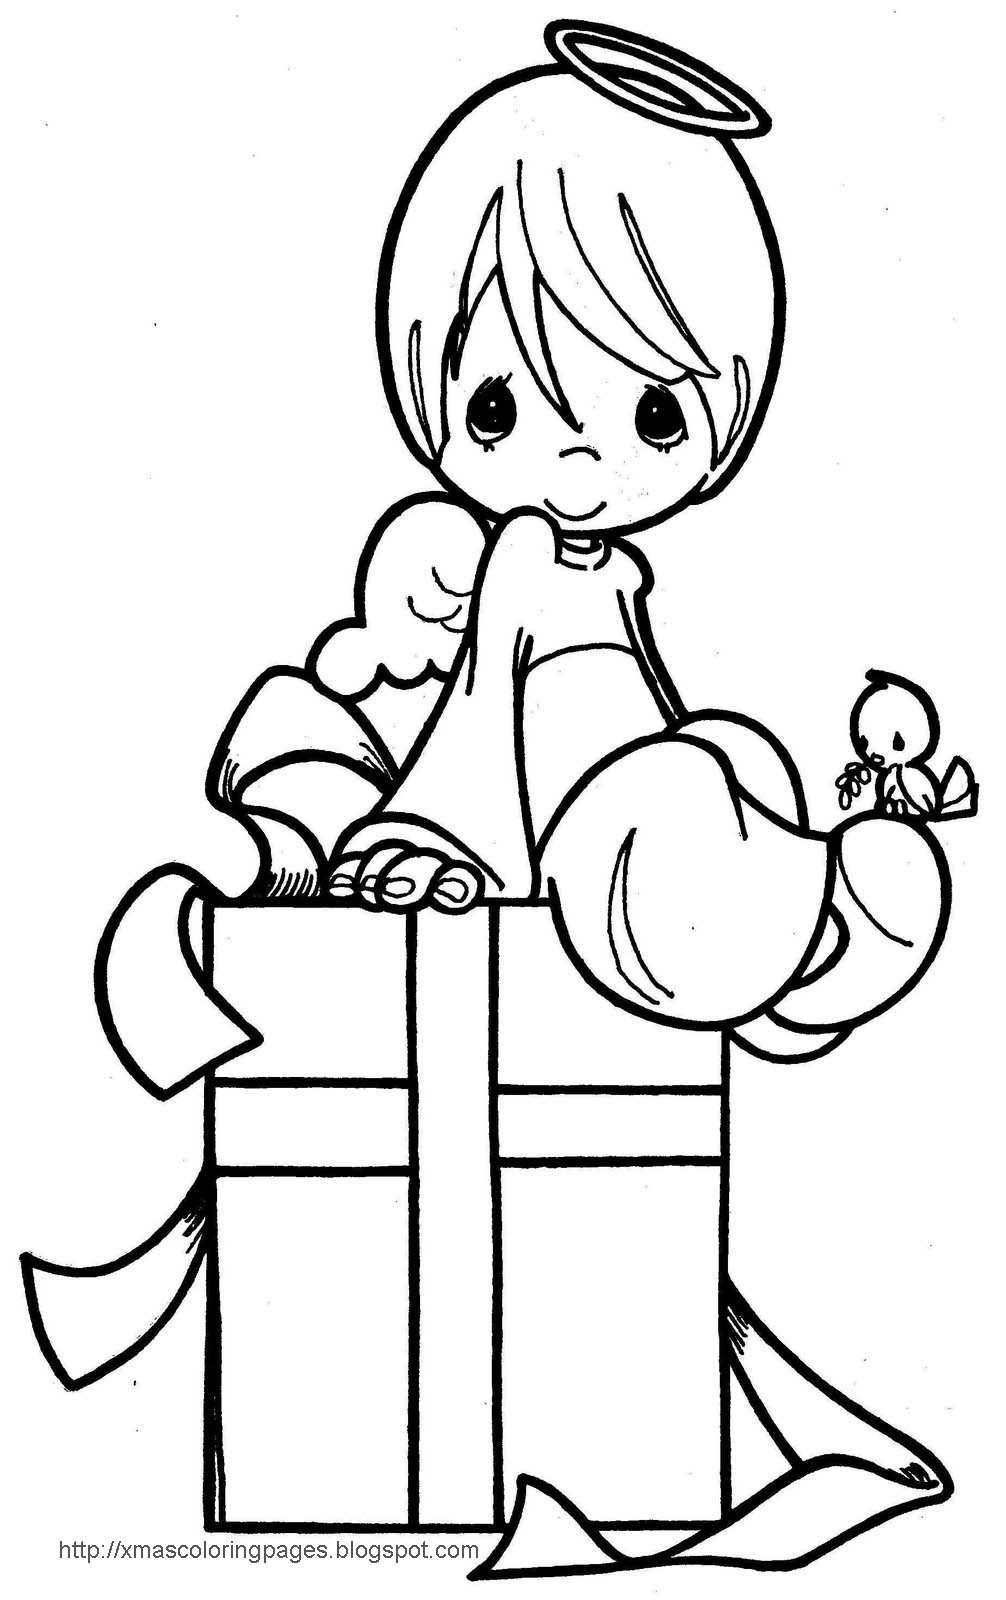 angel coloring sheets angel coloring pages for adults coloring home sheets angel coloring